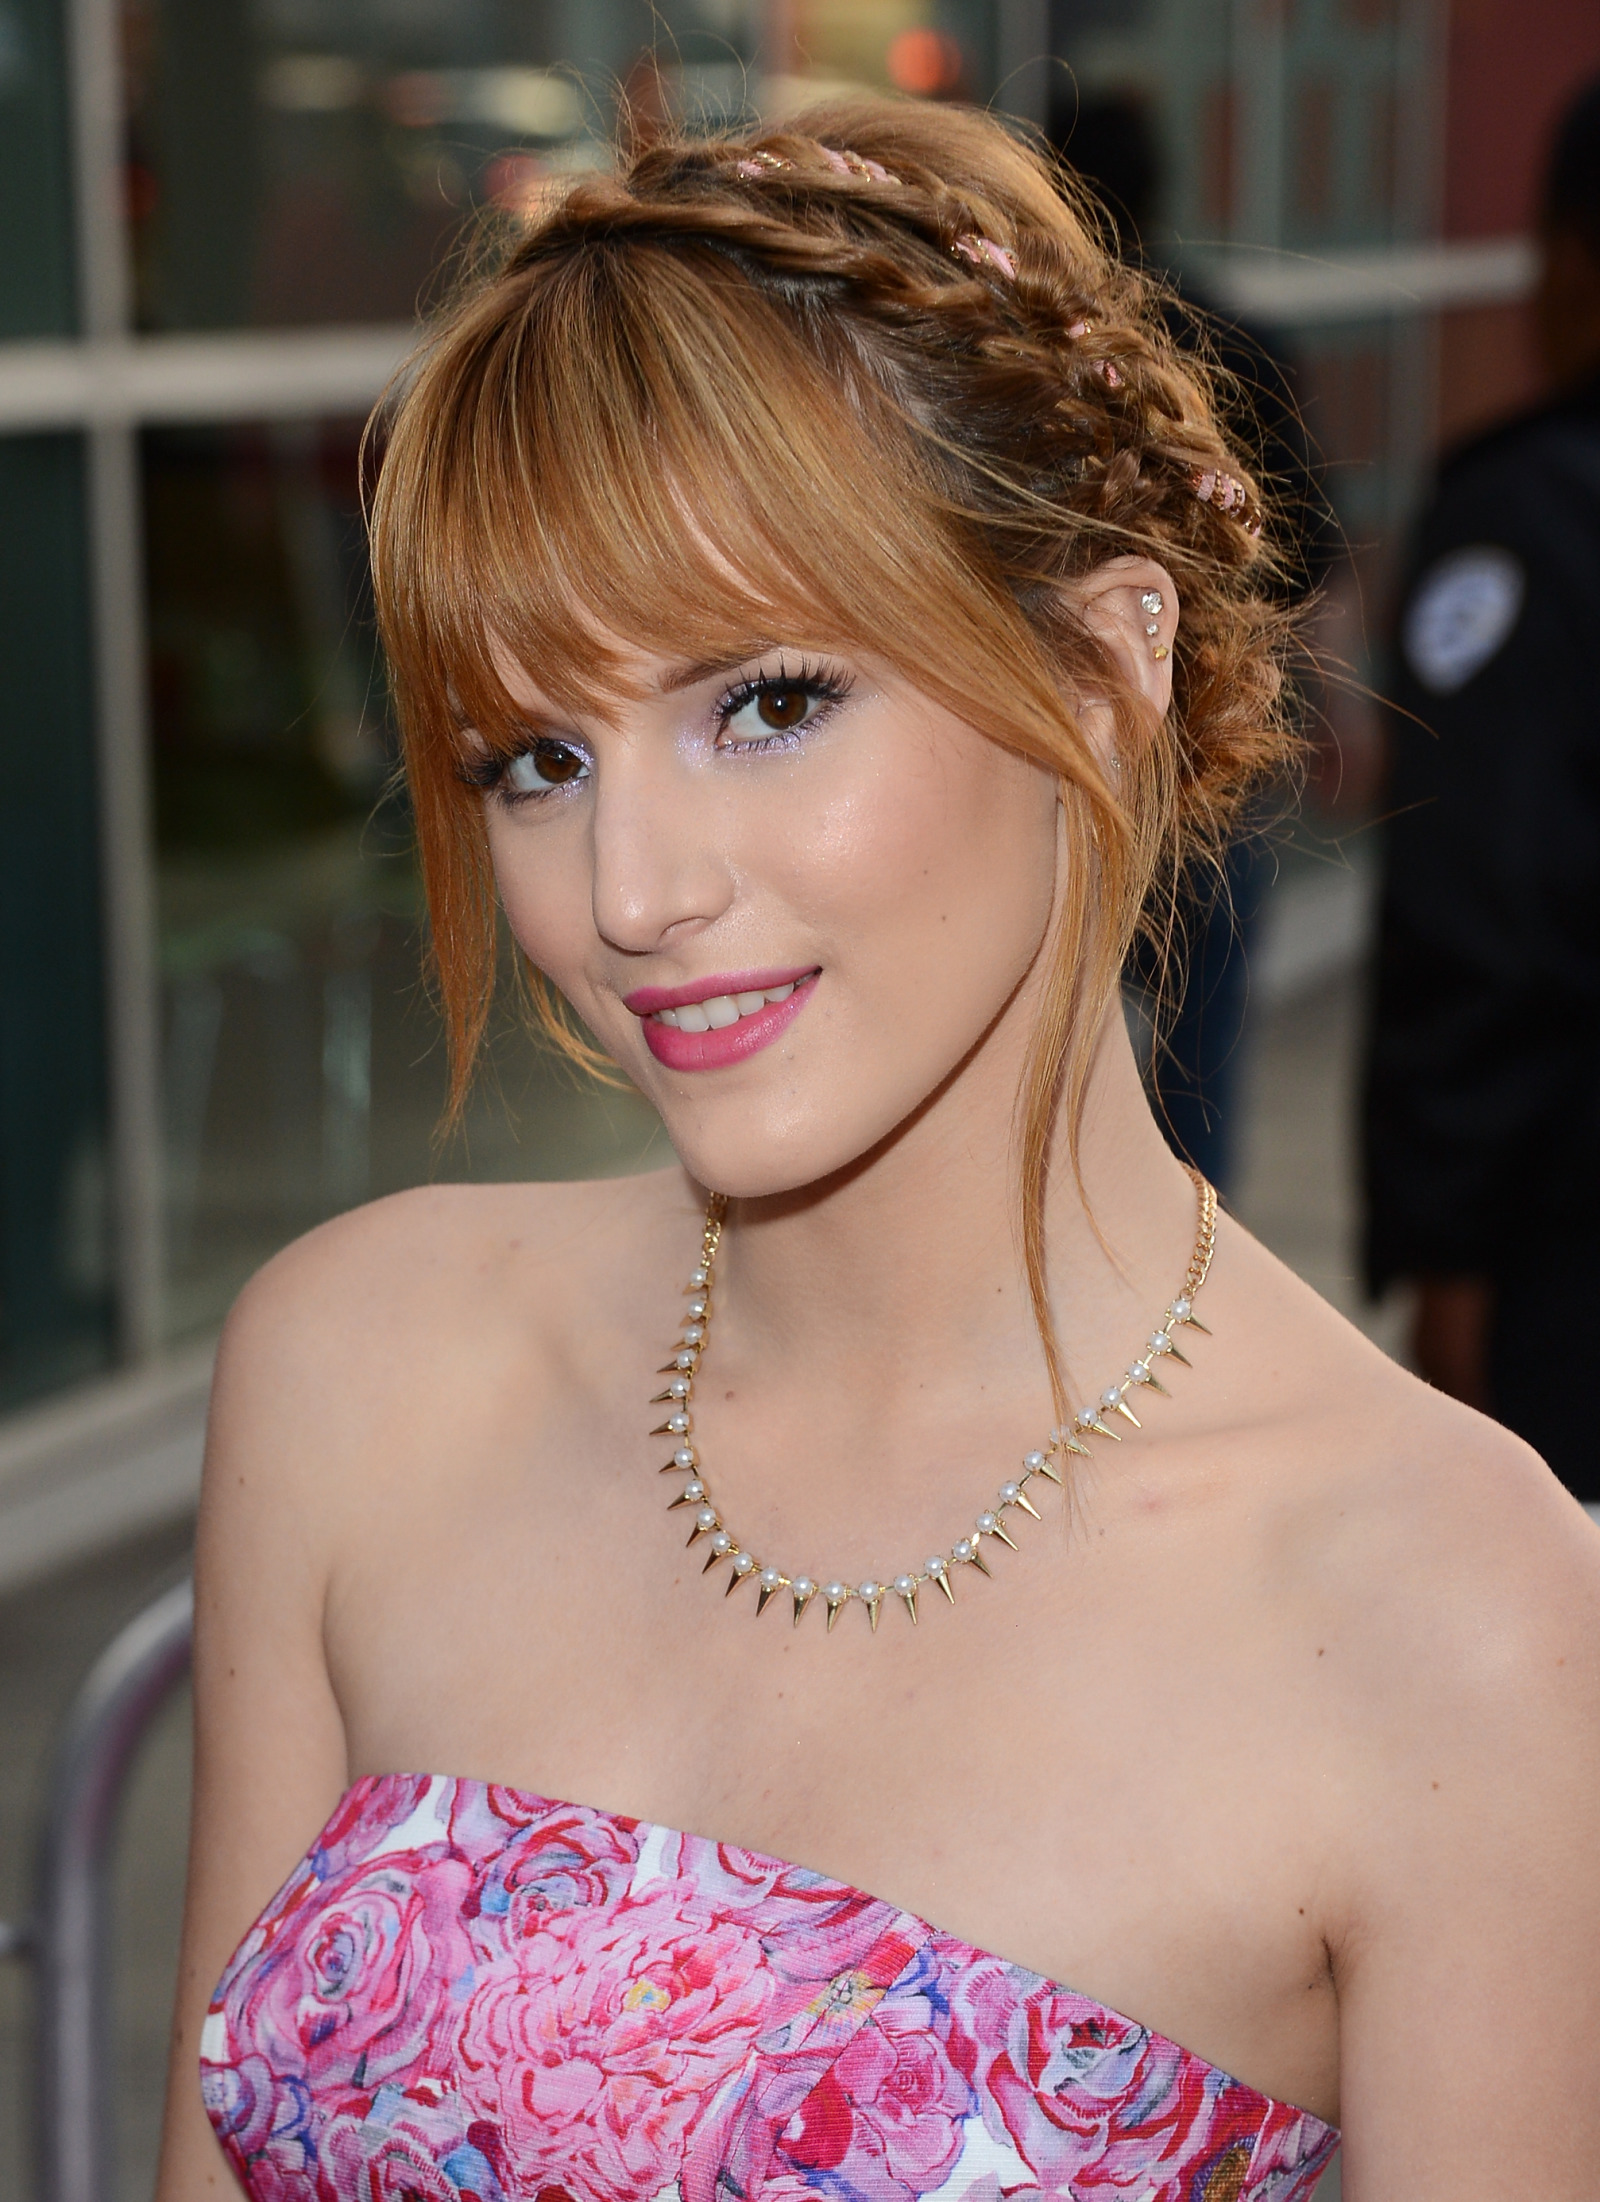 bella thorne call it whatever скачать